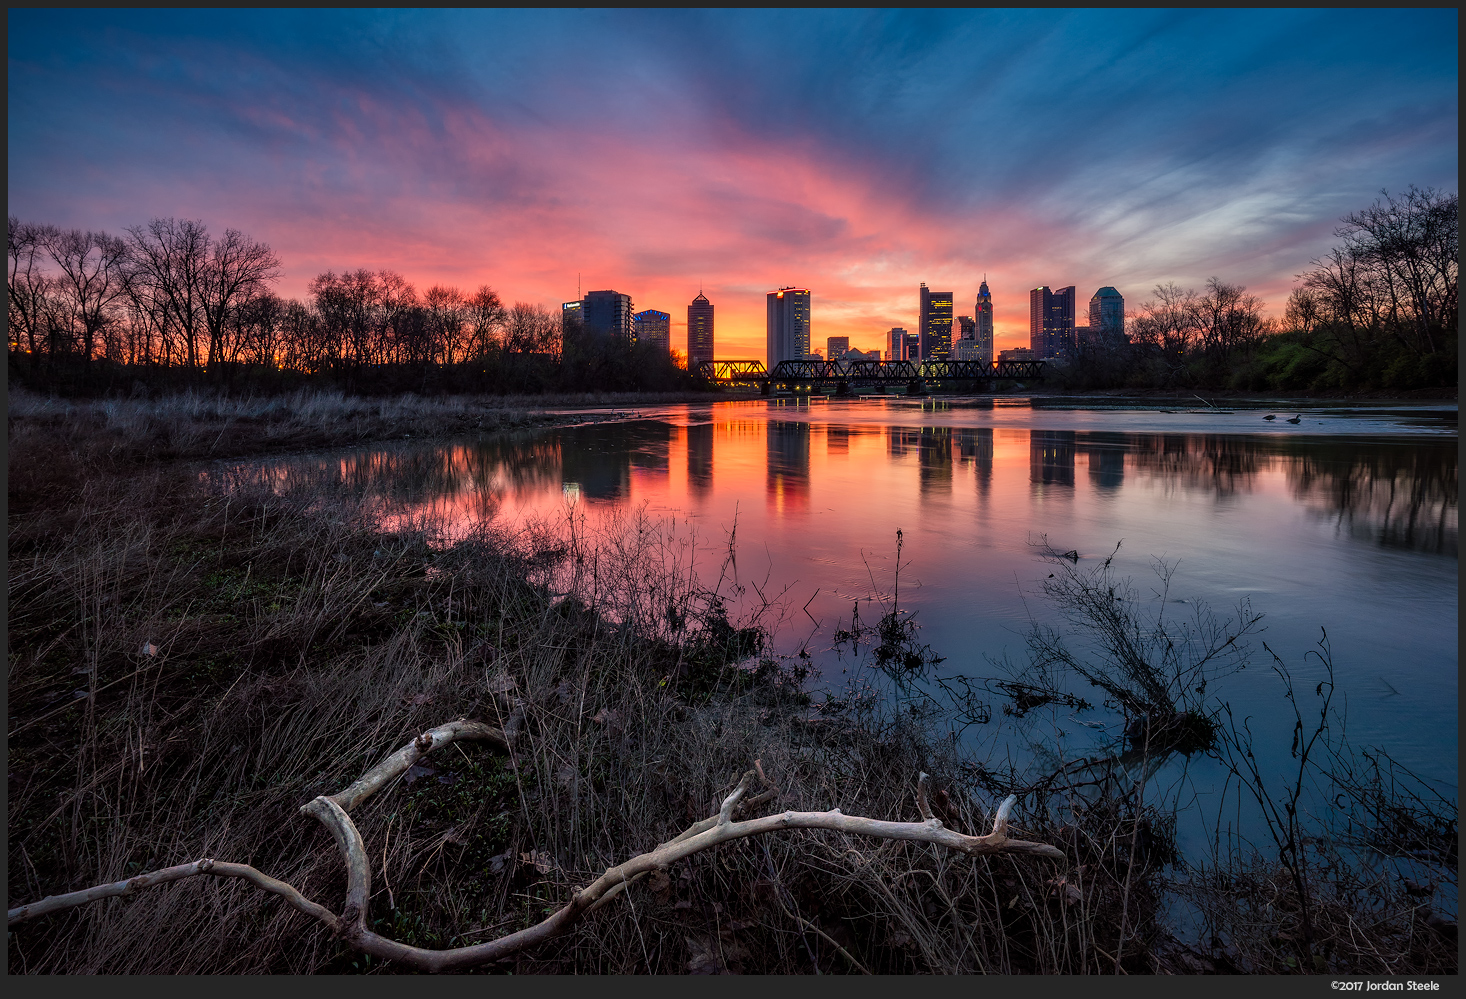 Spring Sunrise, Columbus, OH - Sony A7 II with Zeiss 16-35mm f/4 @